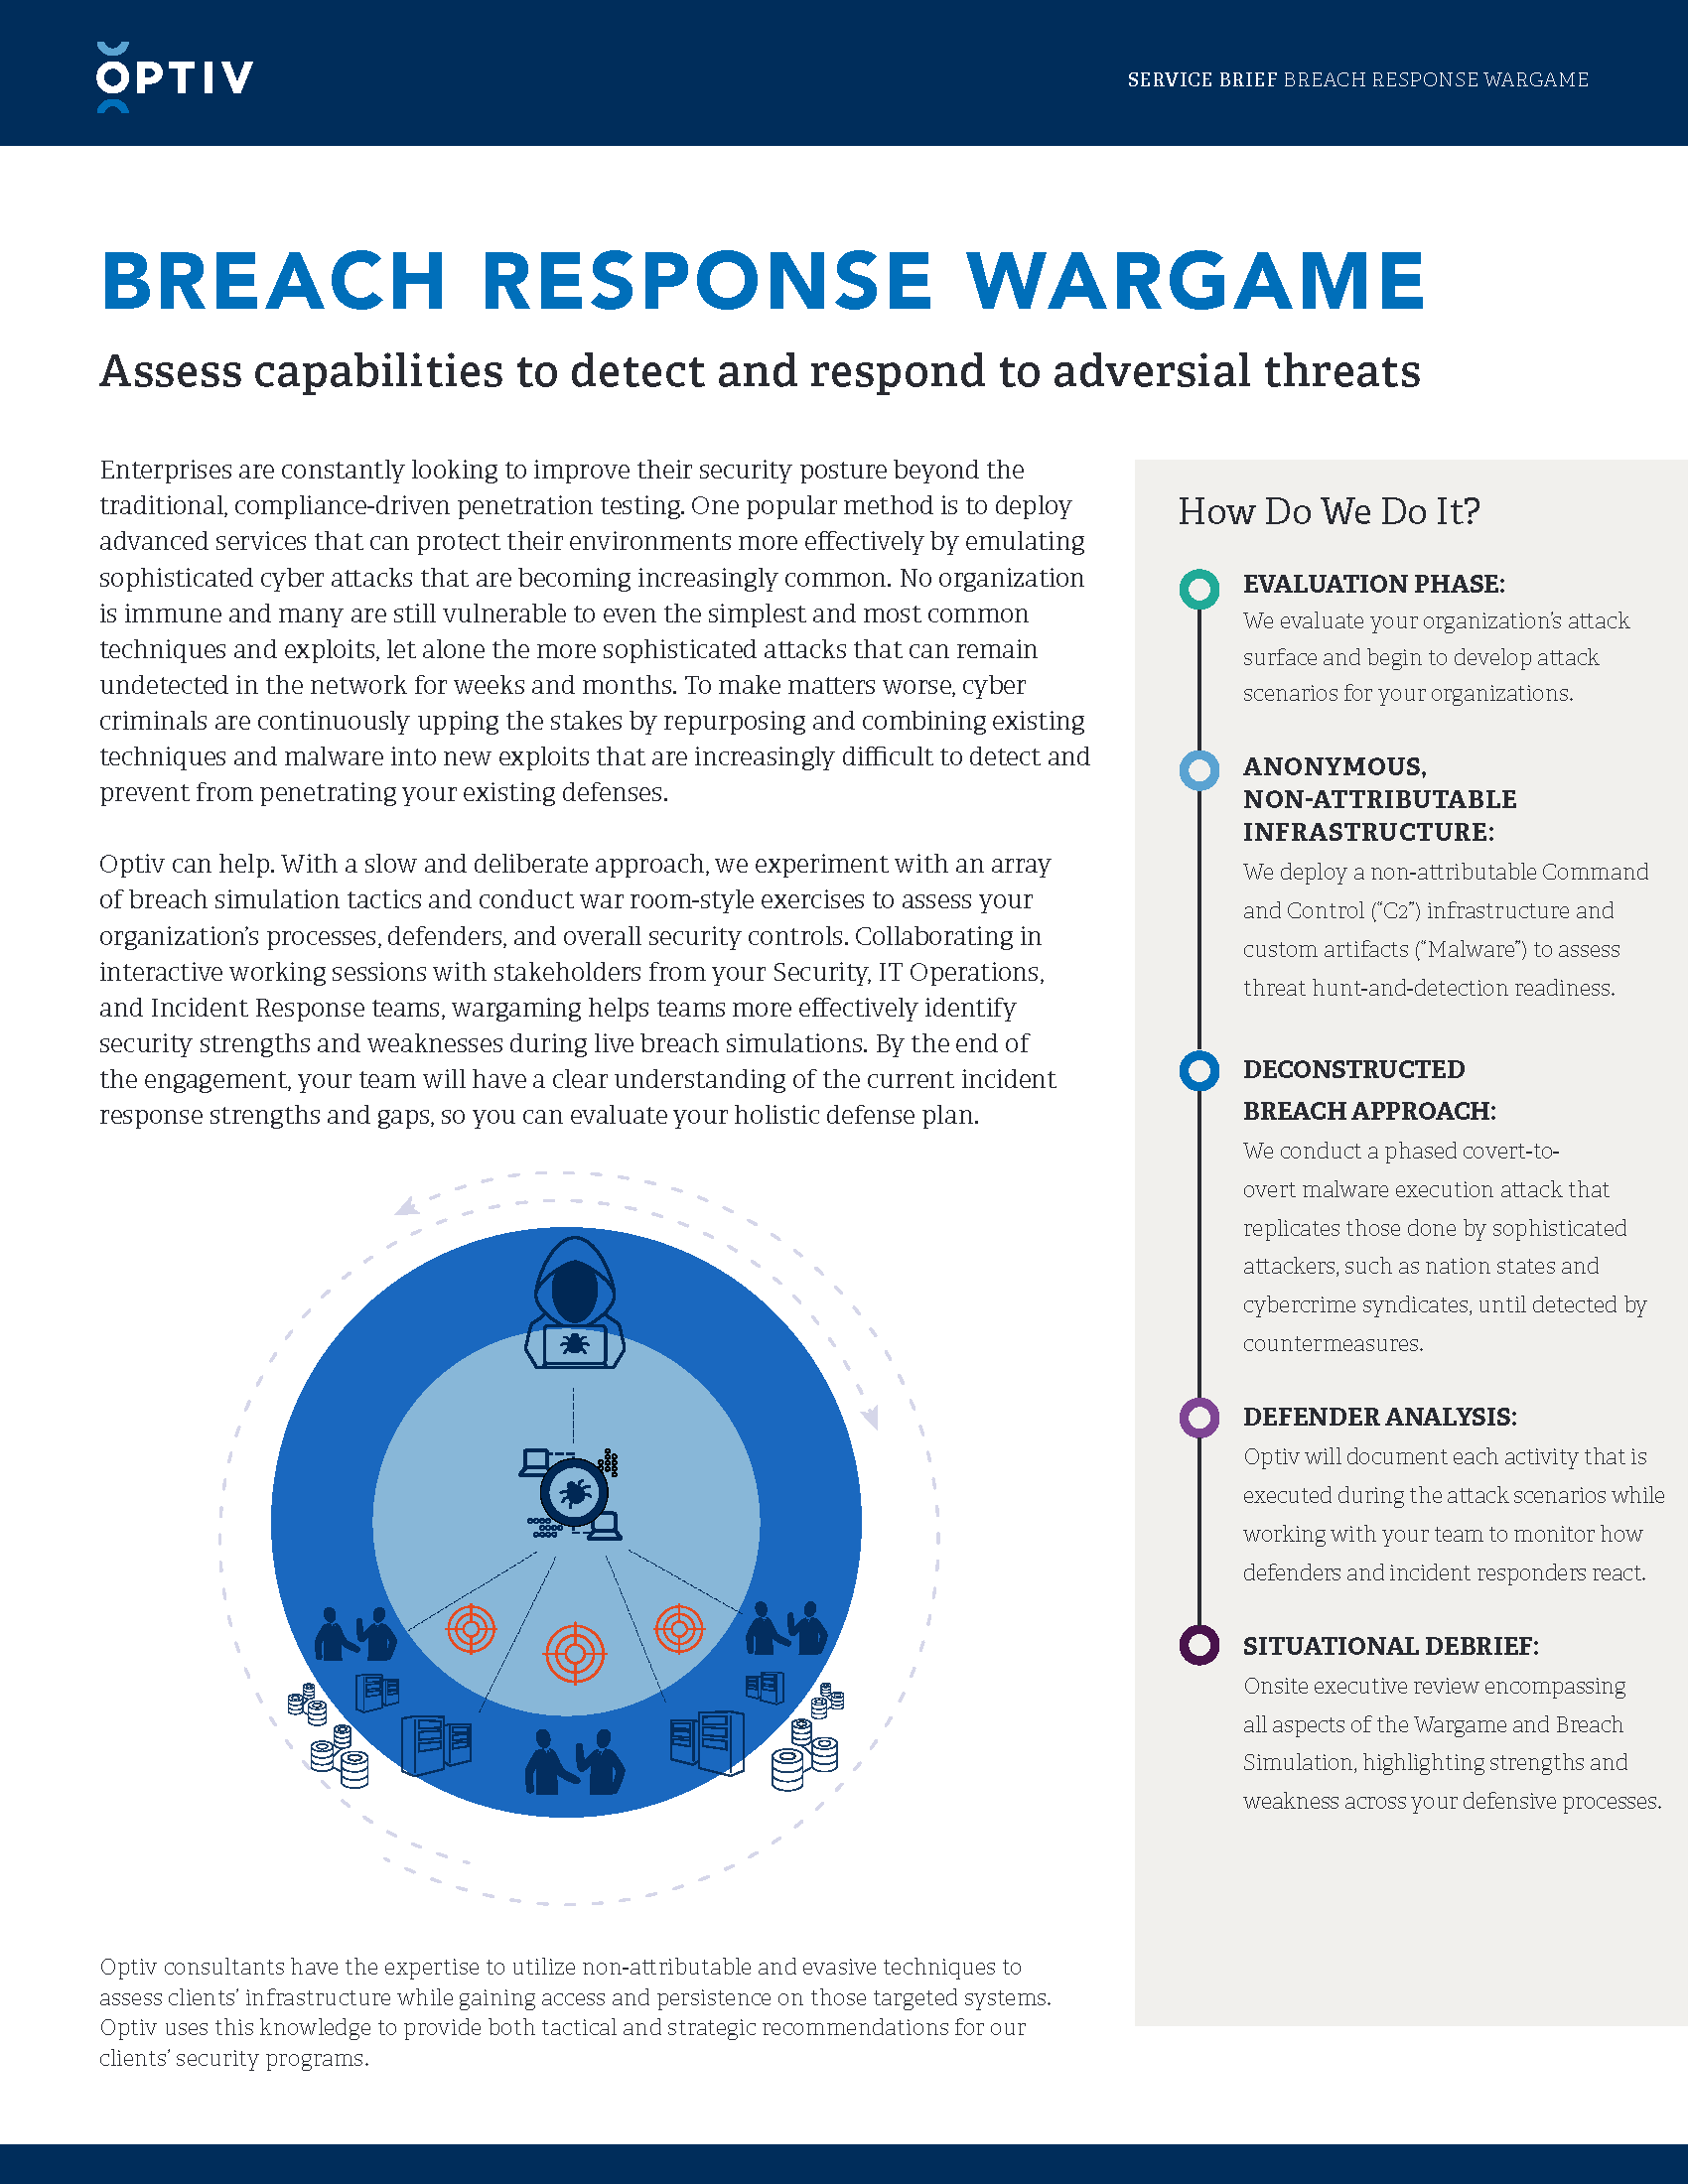 Breach Response Wargame